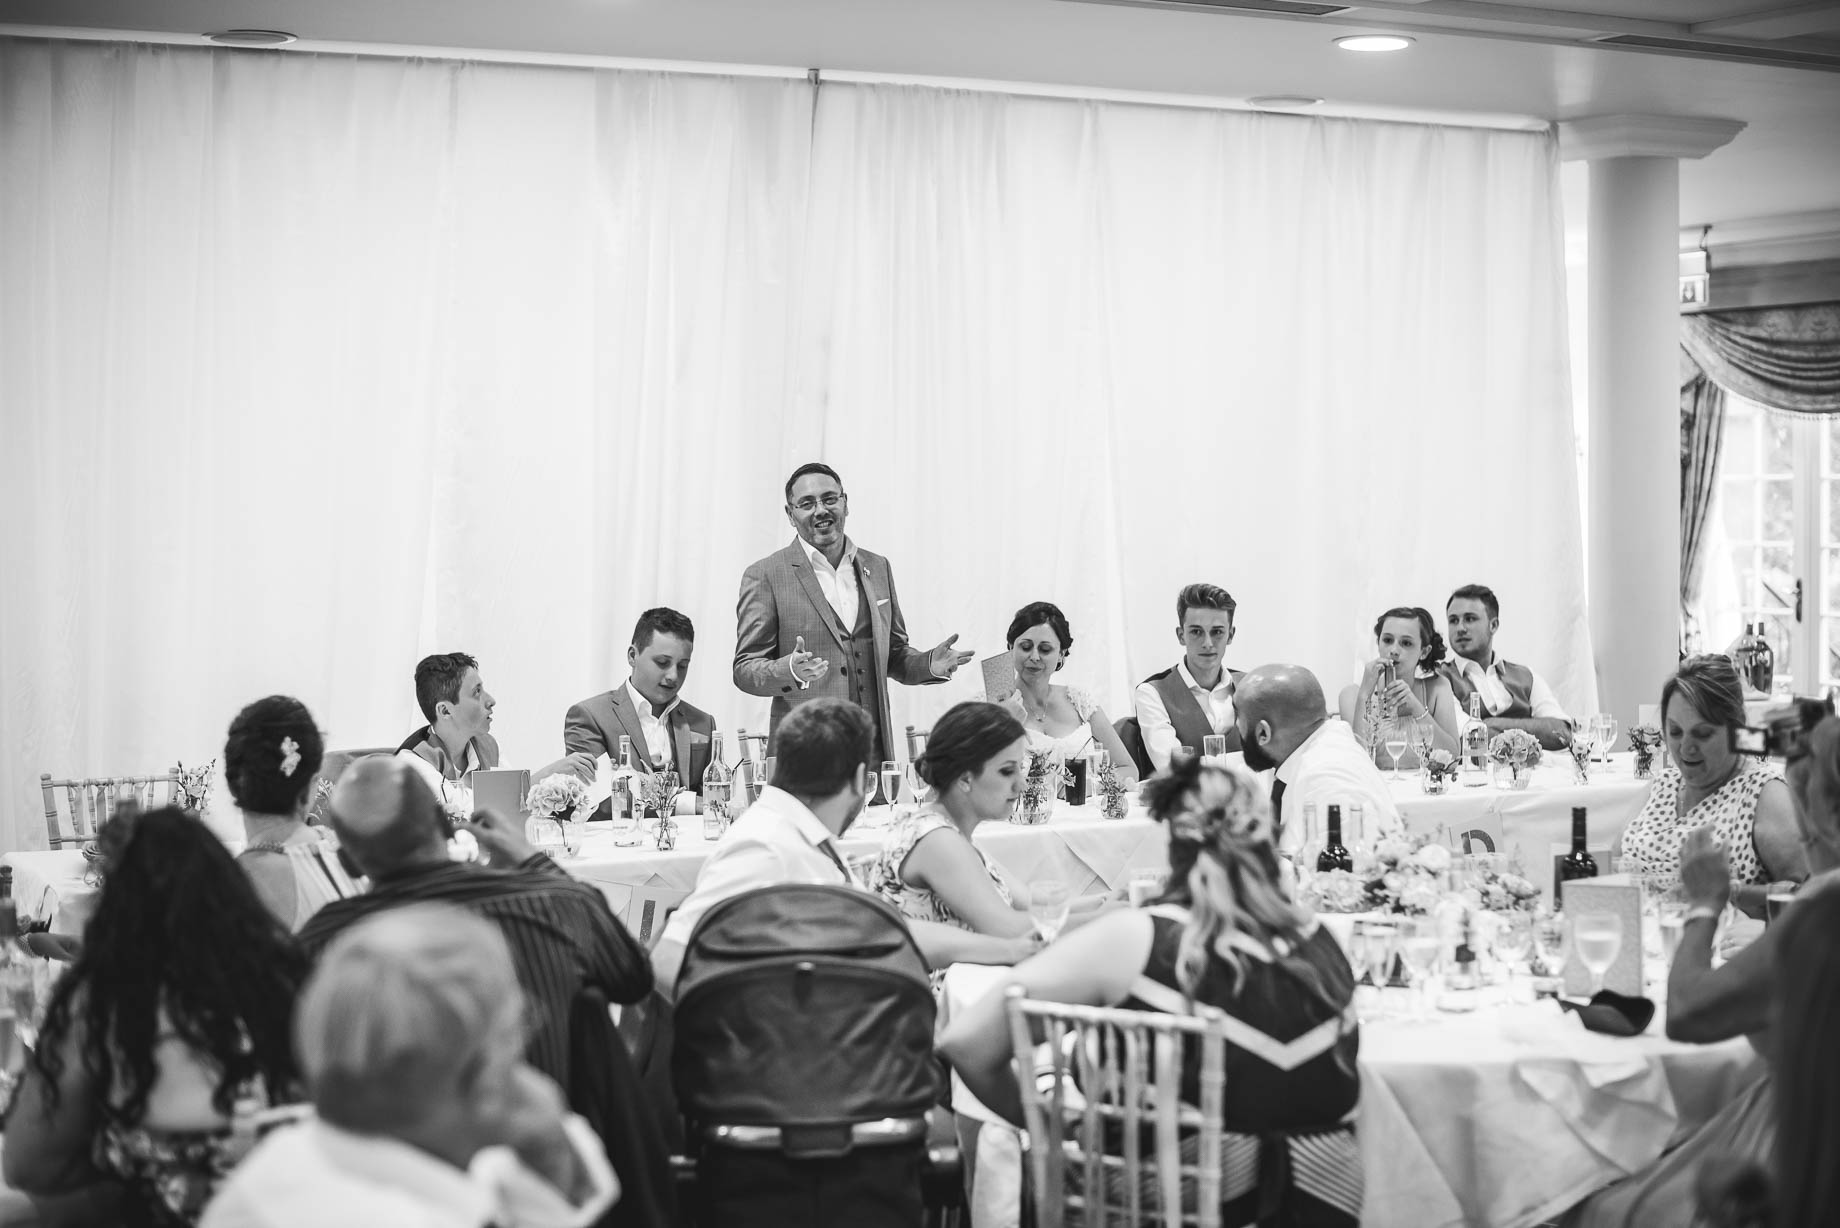 Luton Hoo wedding photography by Guy Collier Photography - Lauren and Gem (129 of 178)